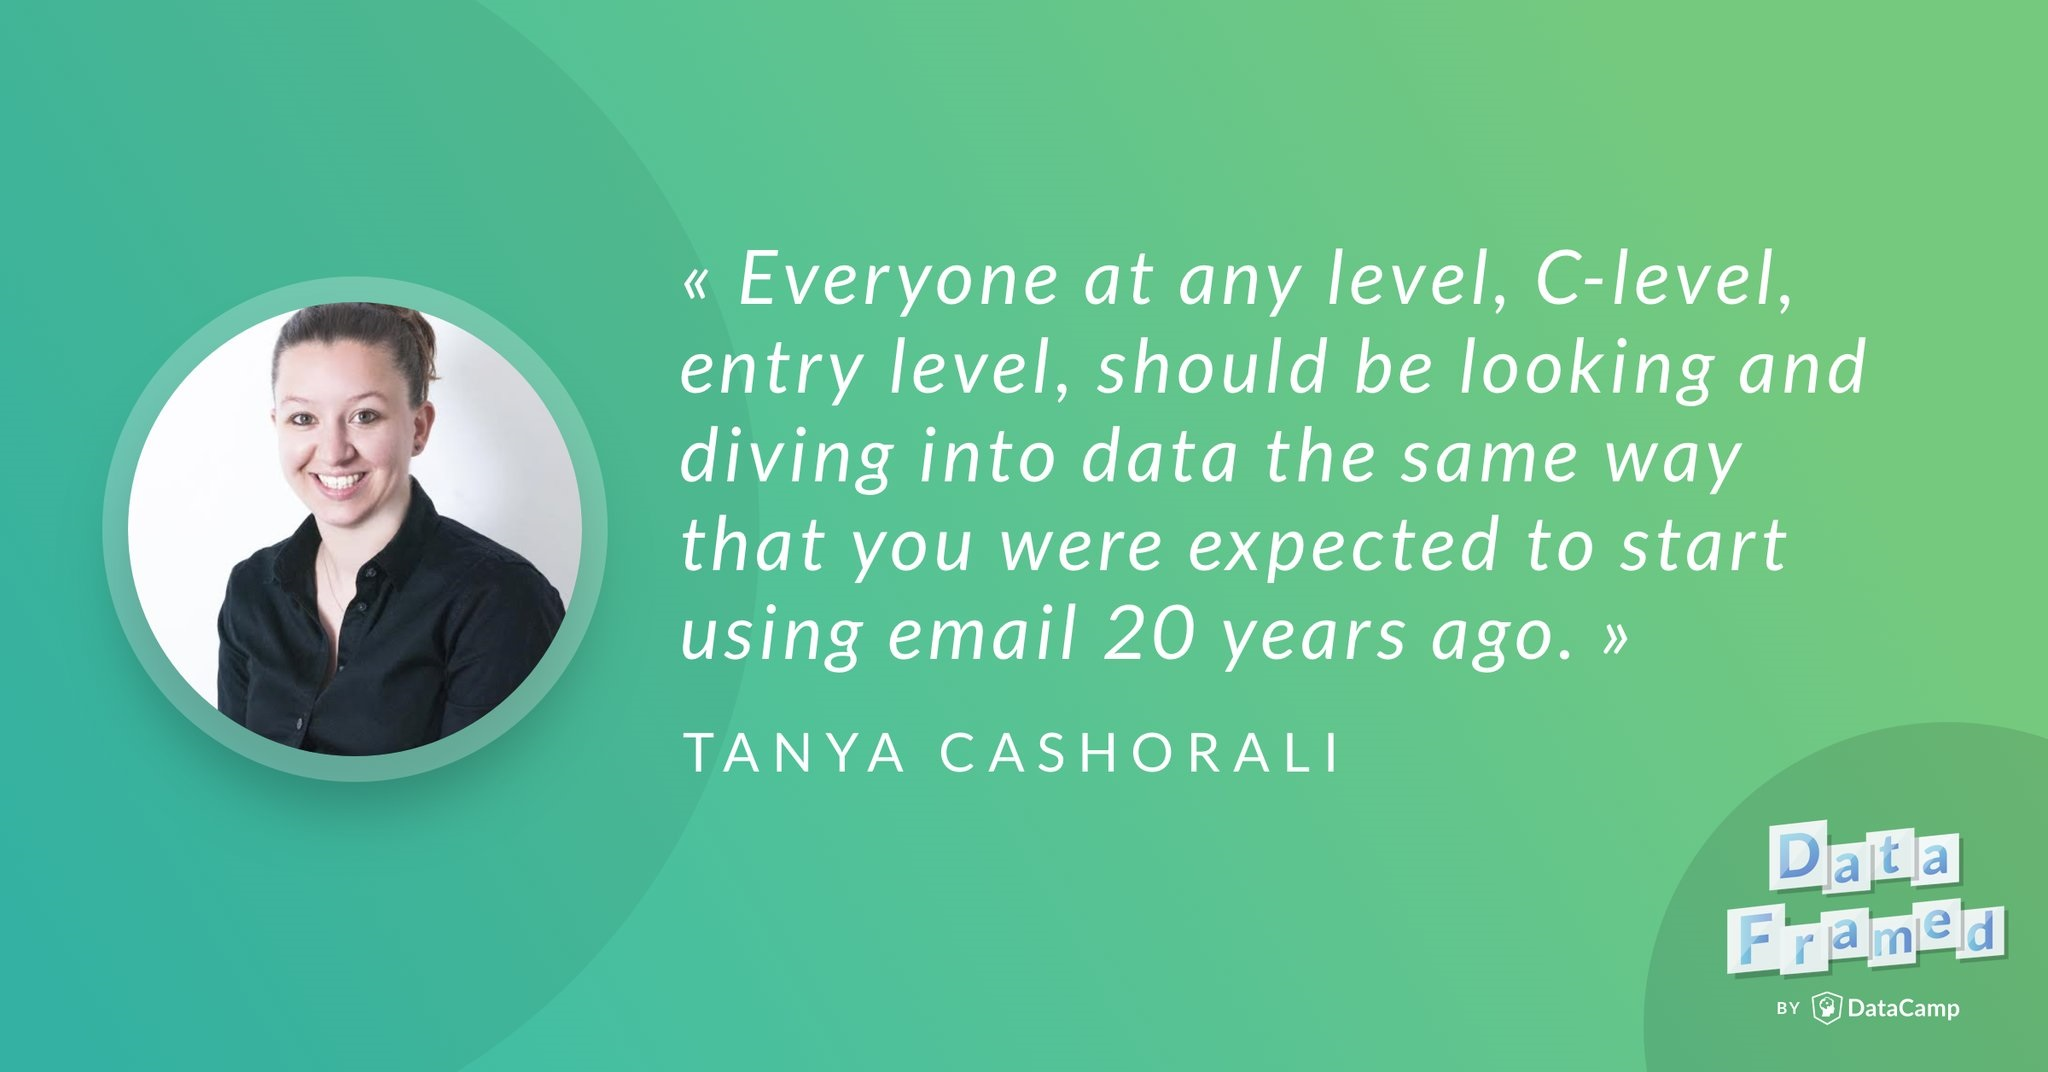 Tanya Cashorali DataFramed Quote